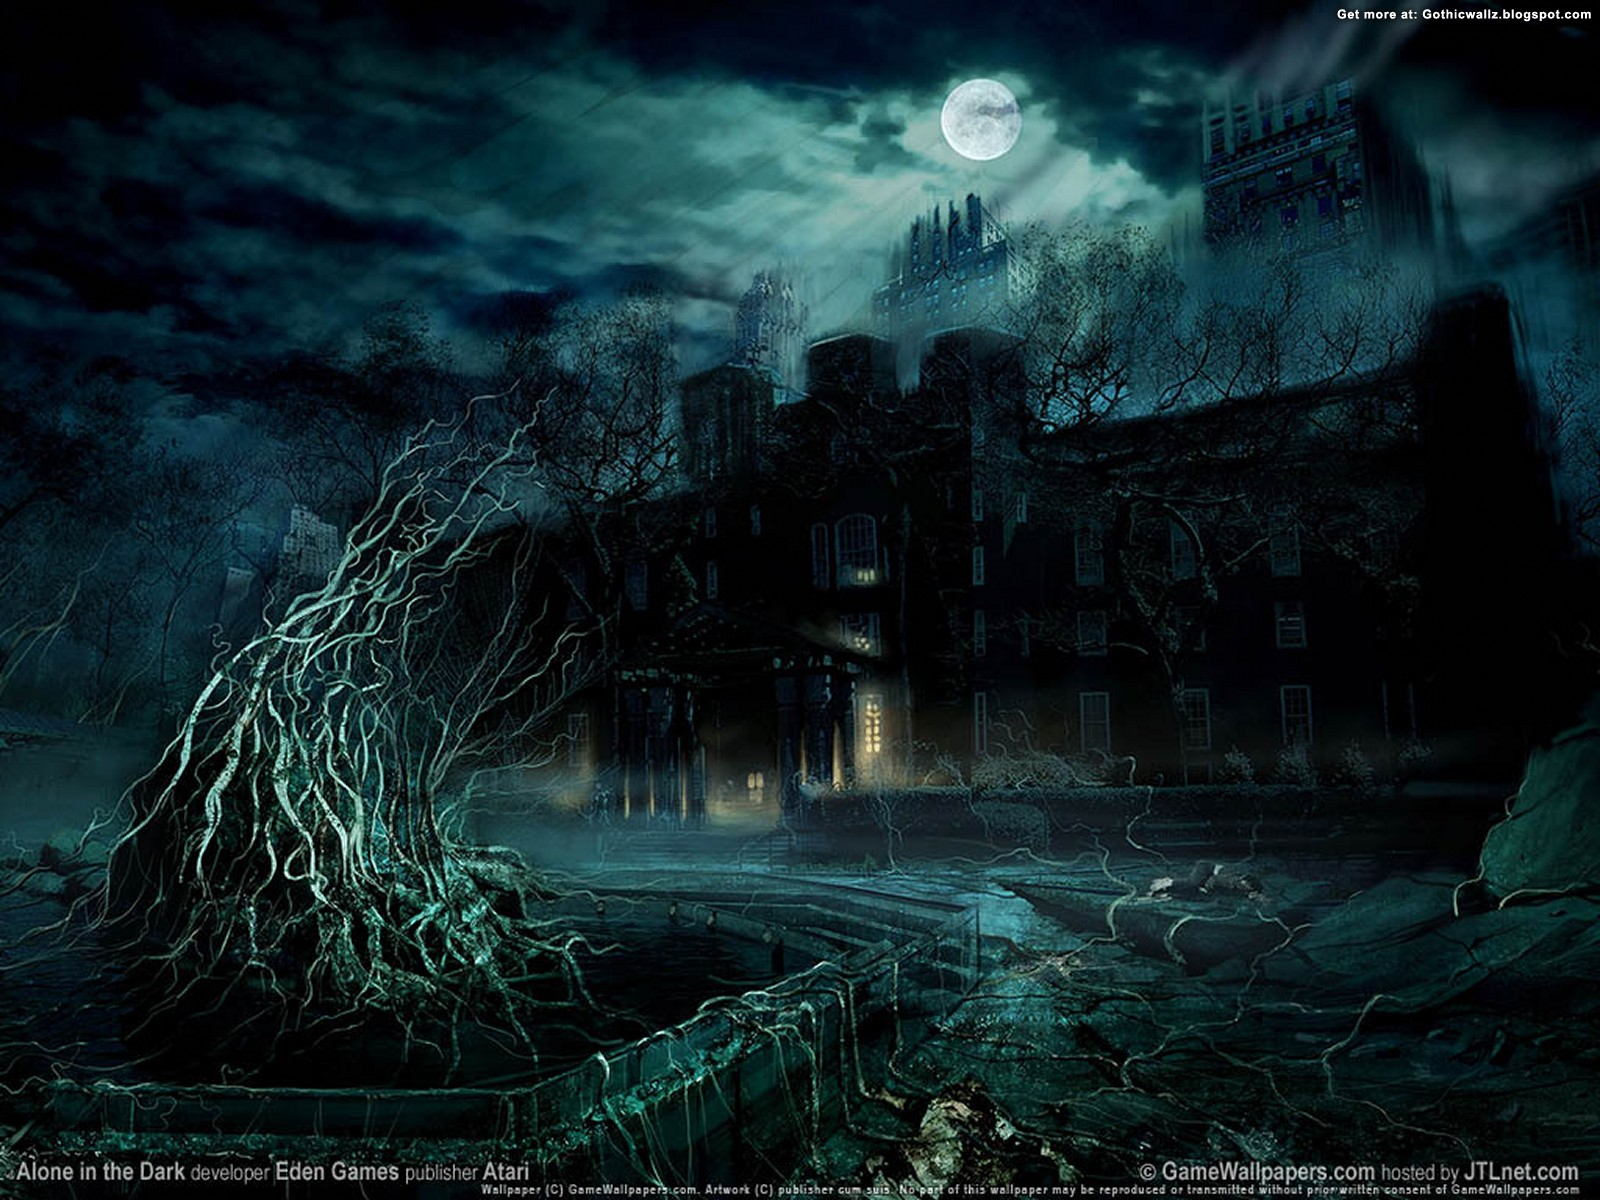 wallpaper alone in the dark | Gothic Wallpaper Download